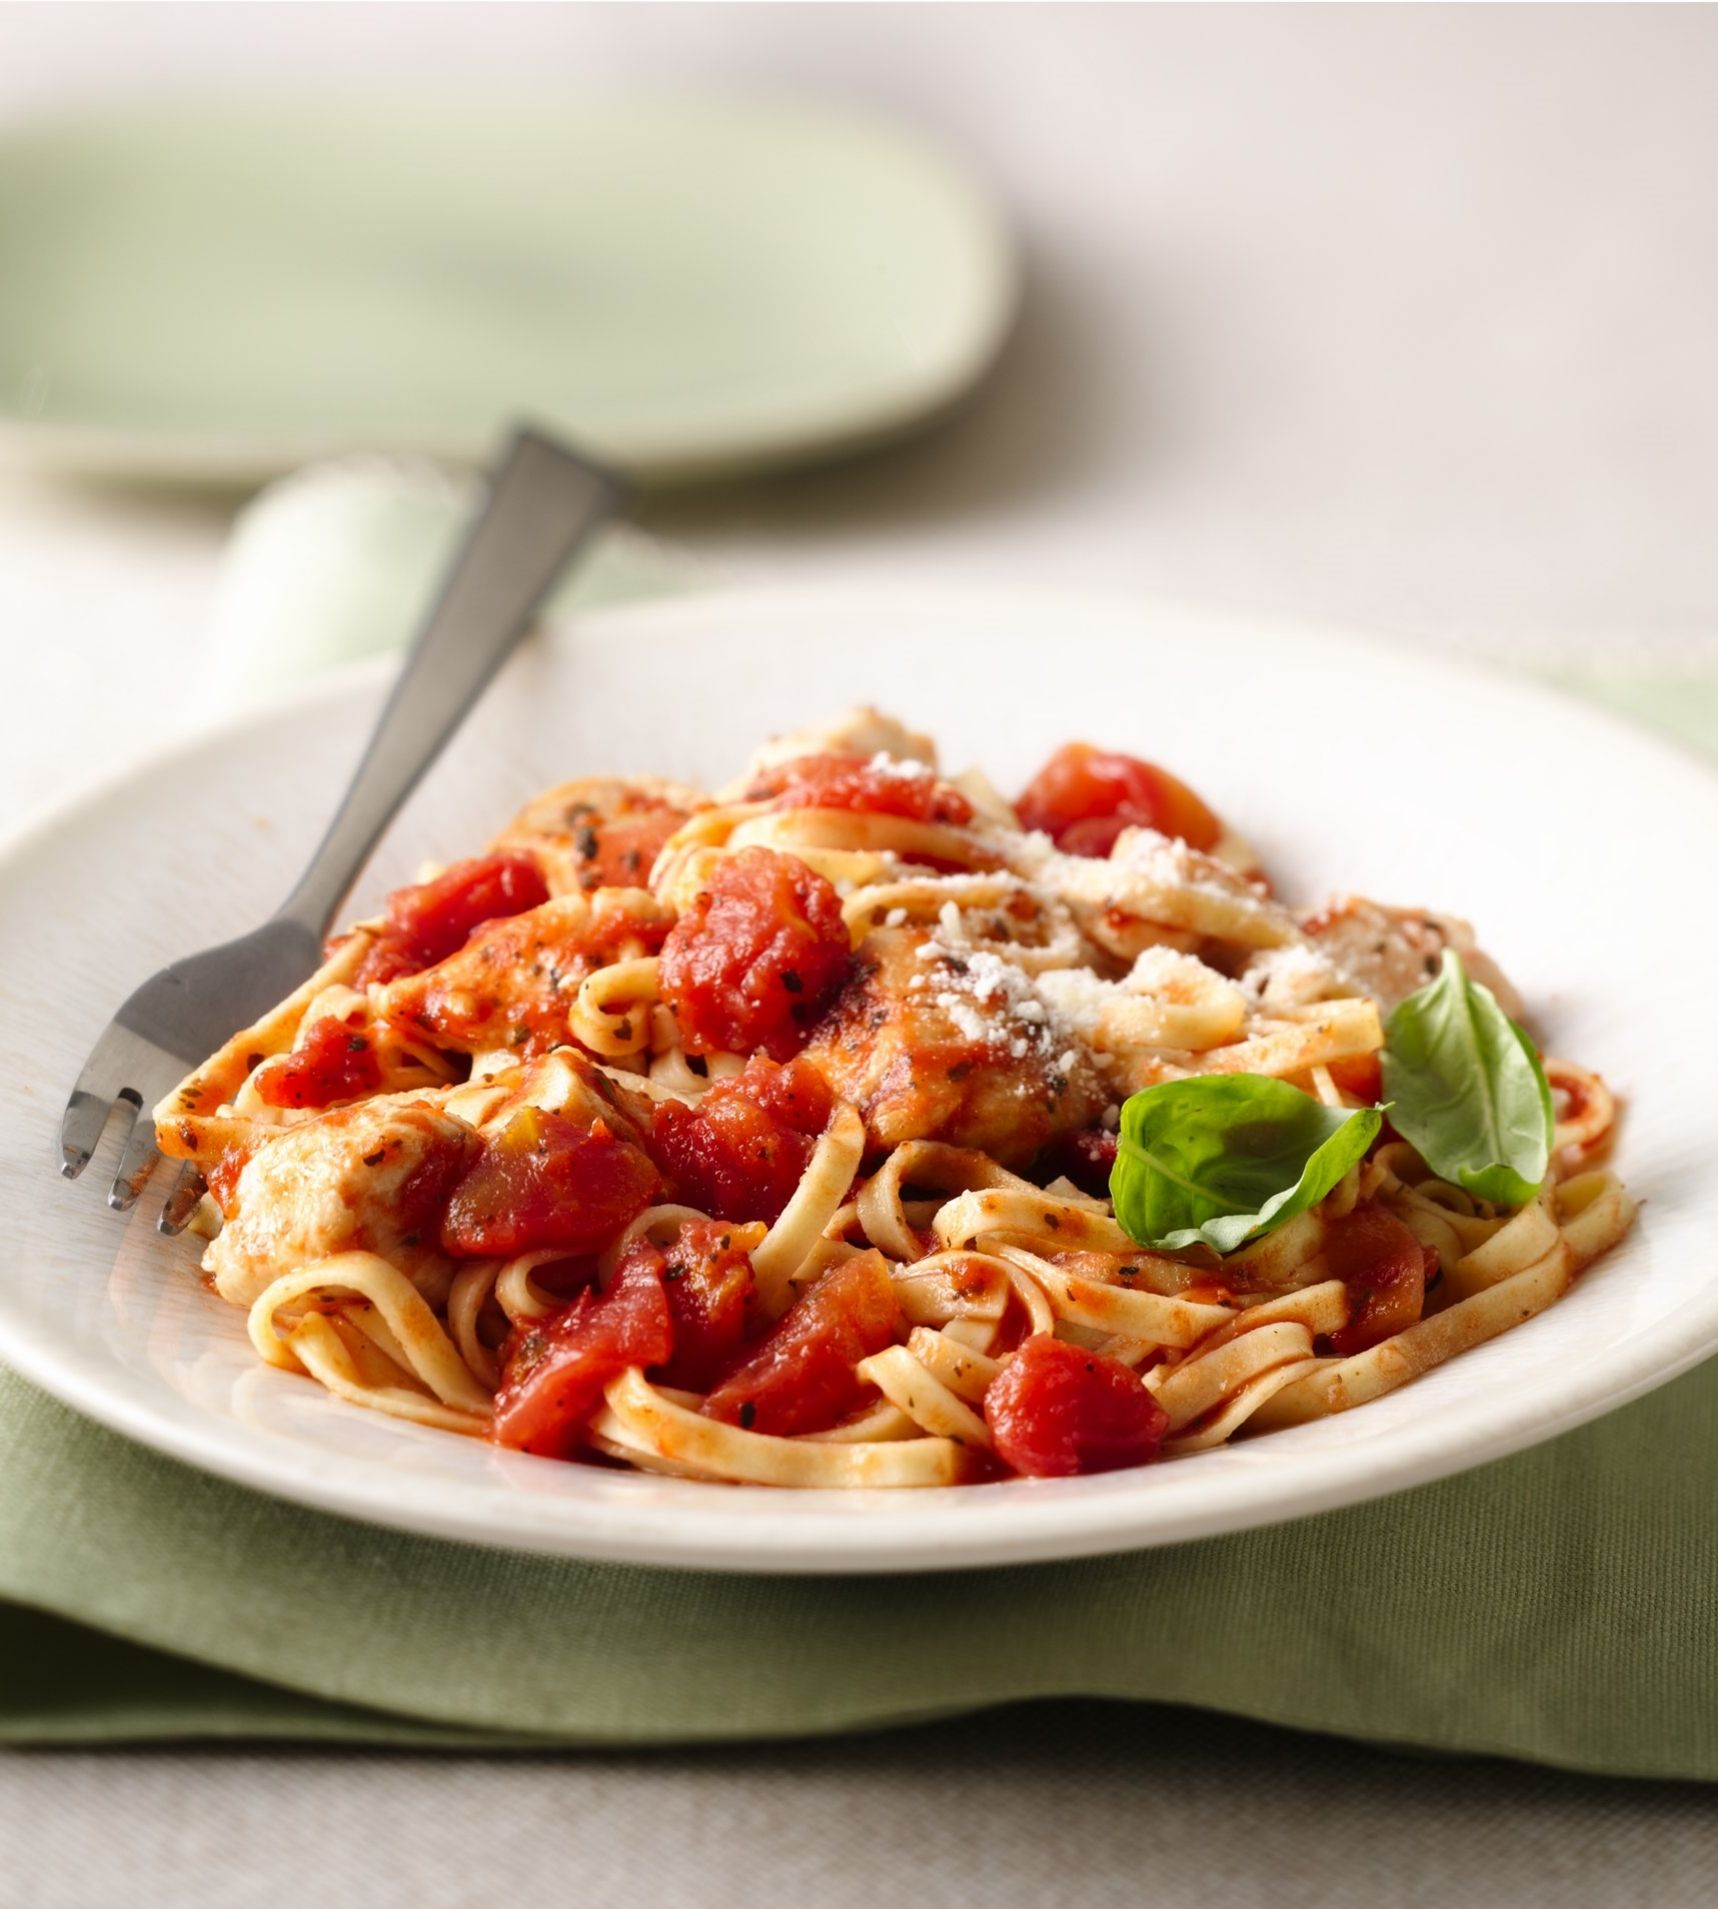 Looking for a one-dish dinner? Enjoy this Italian-inspired masterpiece in a short 20 minutes. Made with just six ingredients, including staple ingredients like boneless, skinless chicken breasts, Parmesan and canned tomatoes, this supper is sure to satisfy.